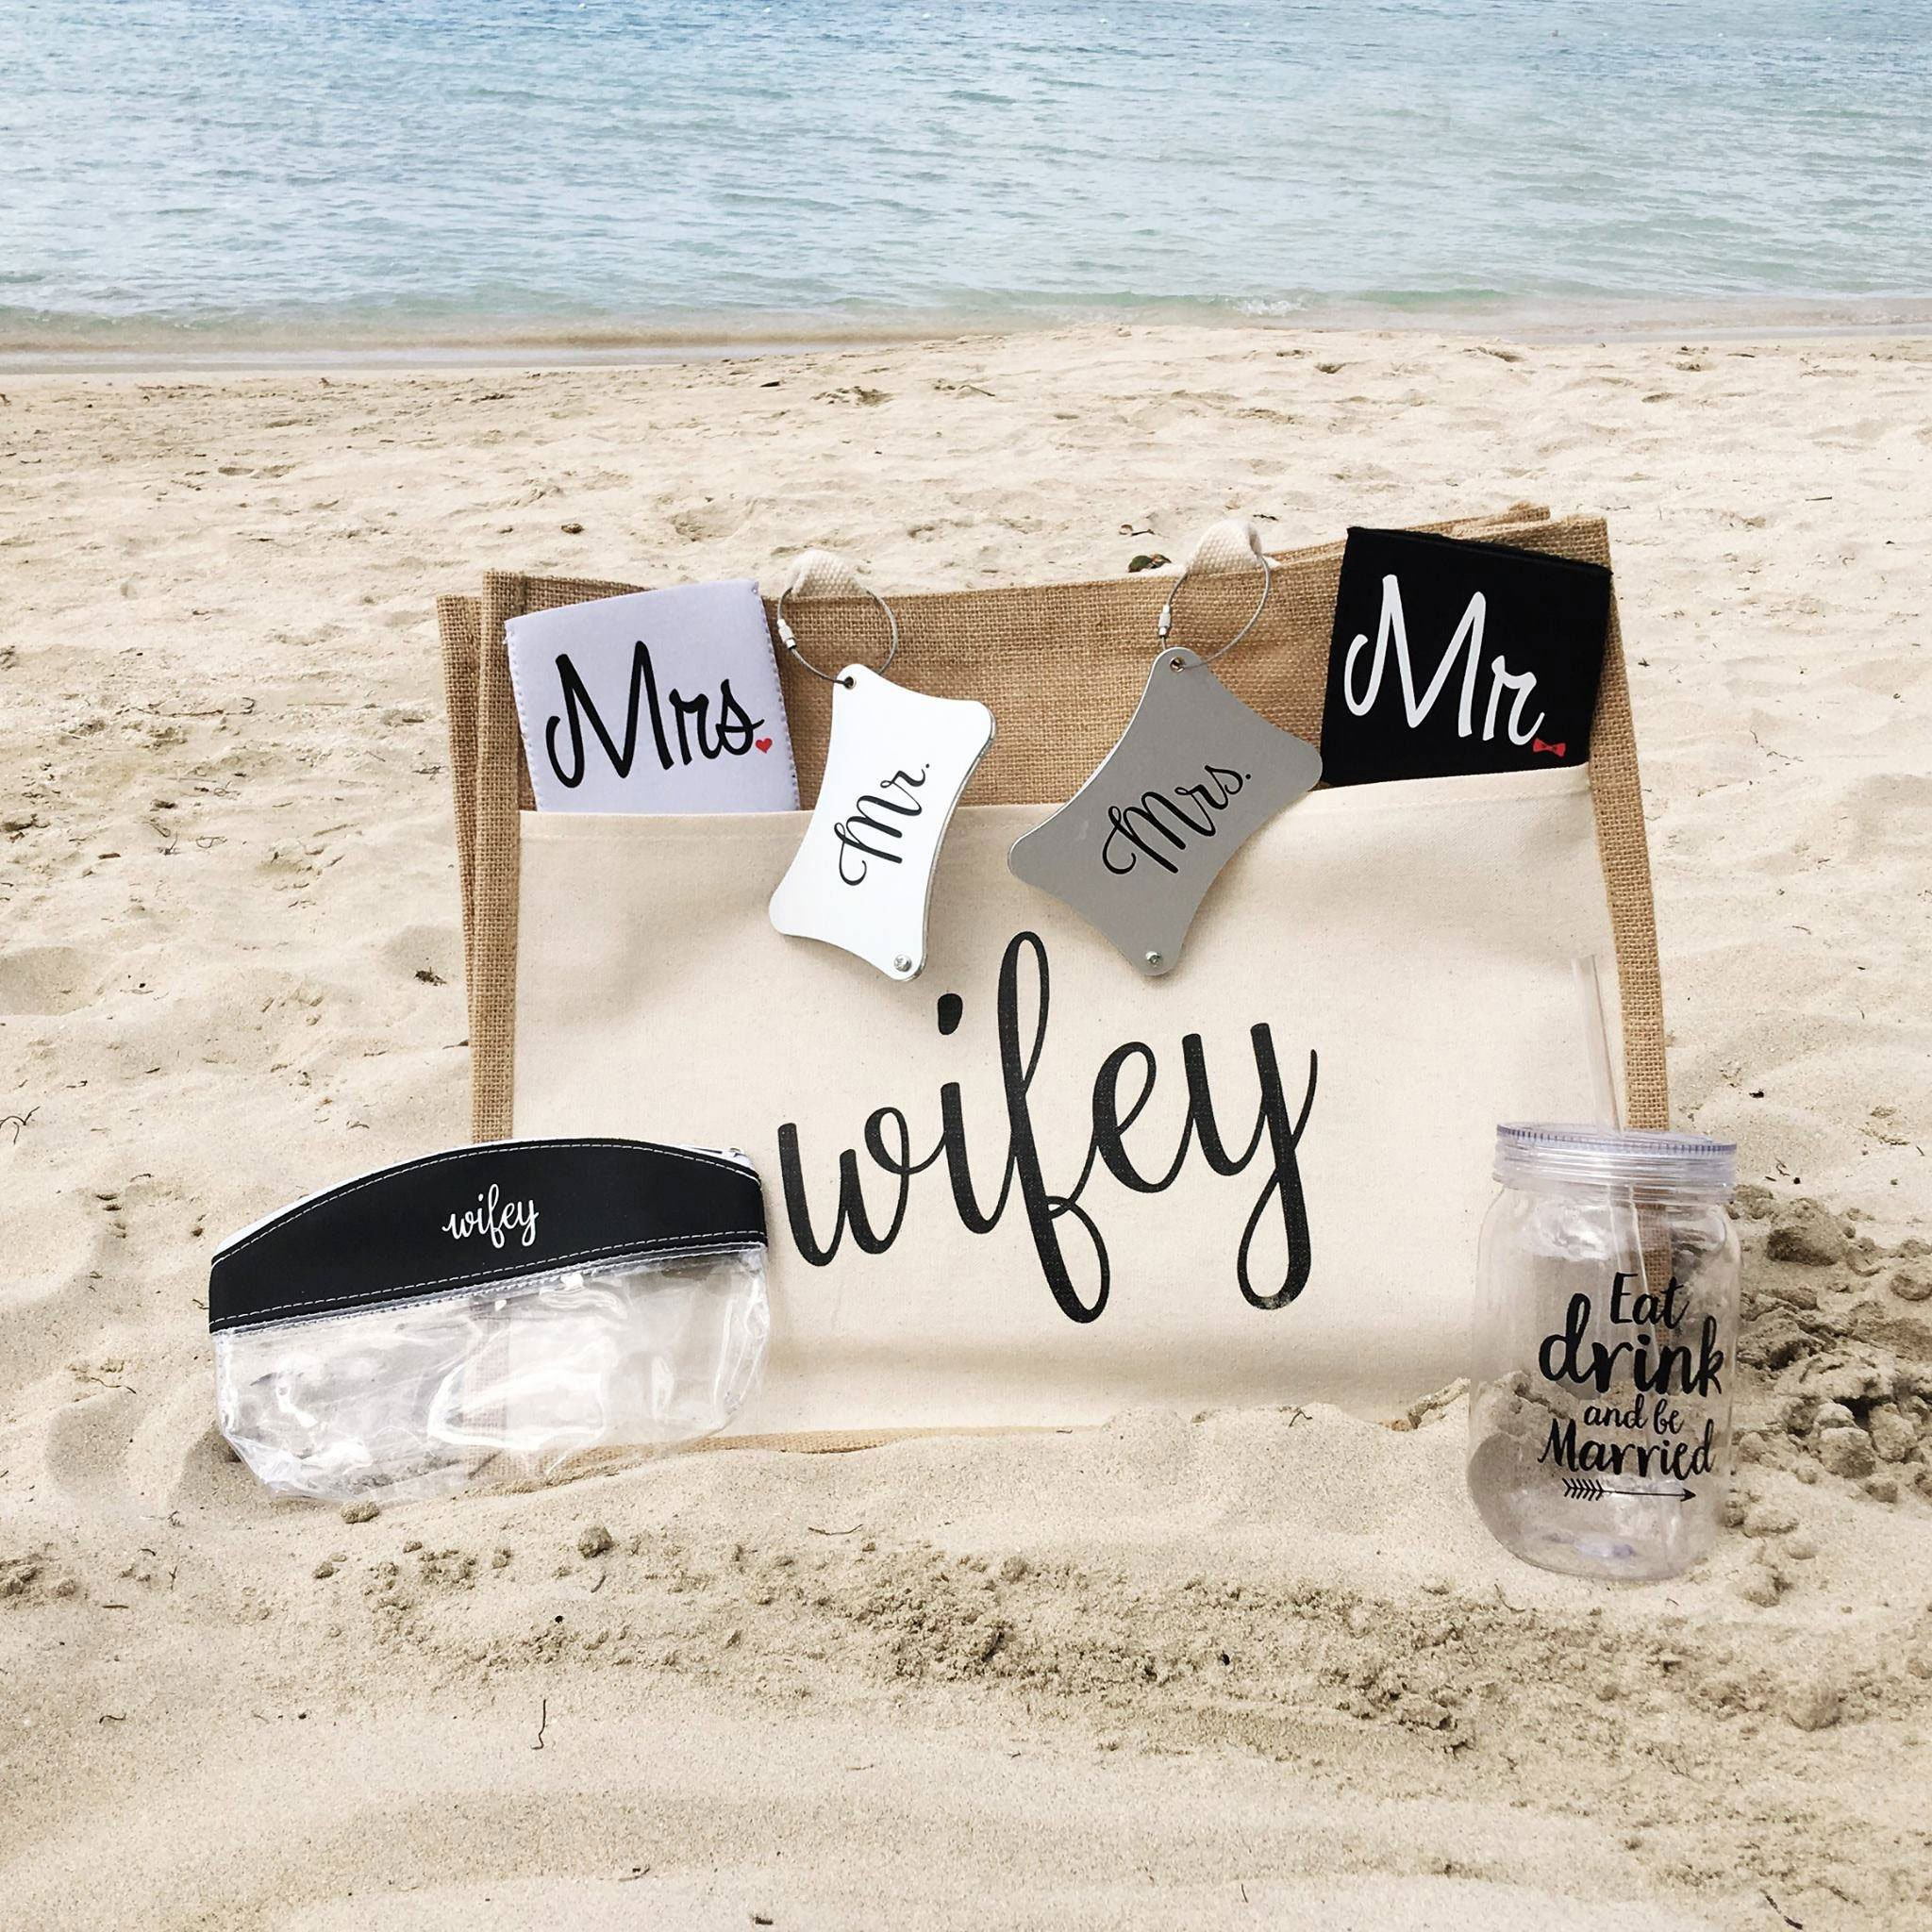 Honeymoon Gift- Unique Wedding Present or Bridal Shower Gift for Newlyweds by Wine Wraps LLC (Image #5)